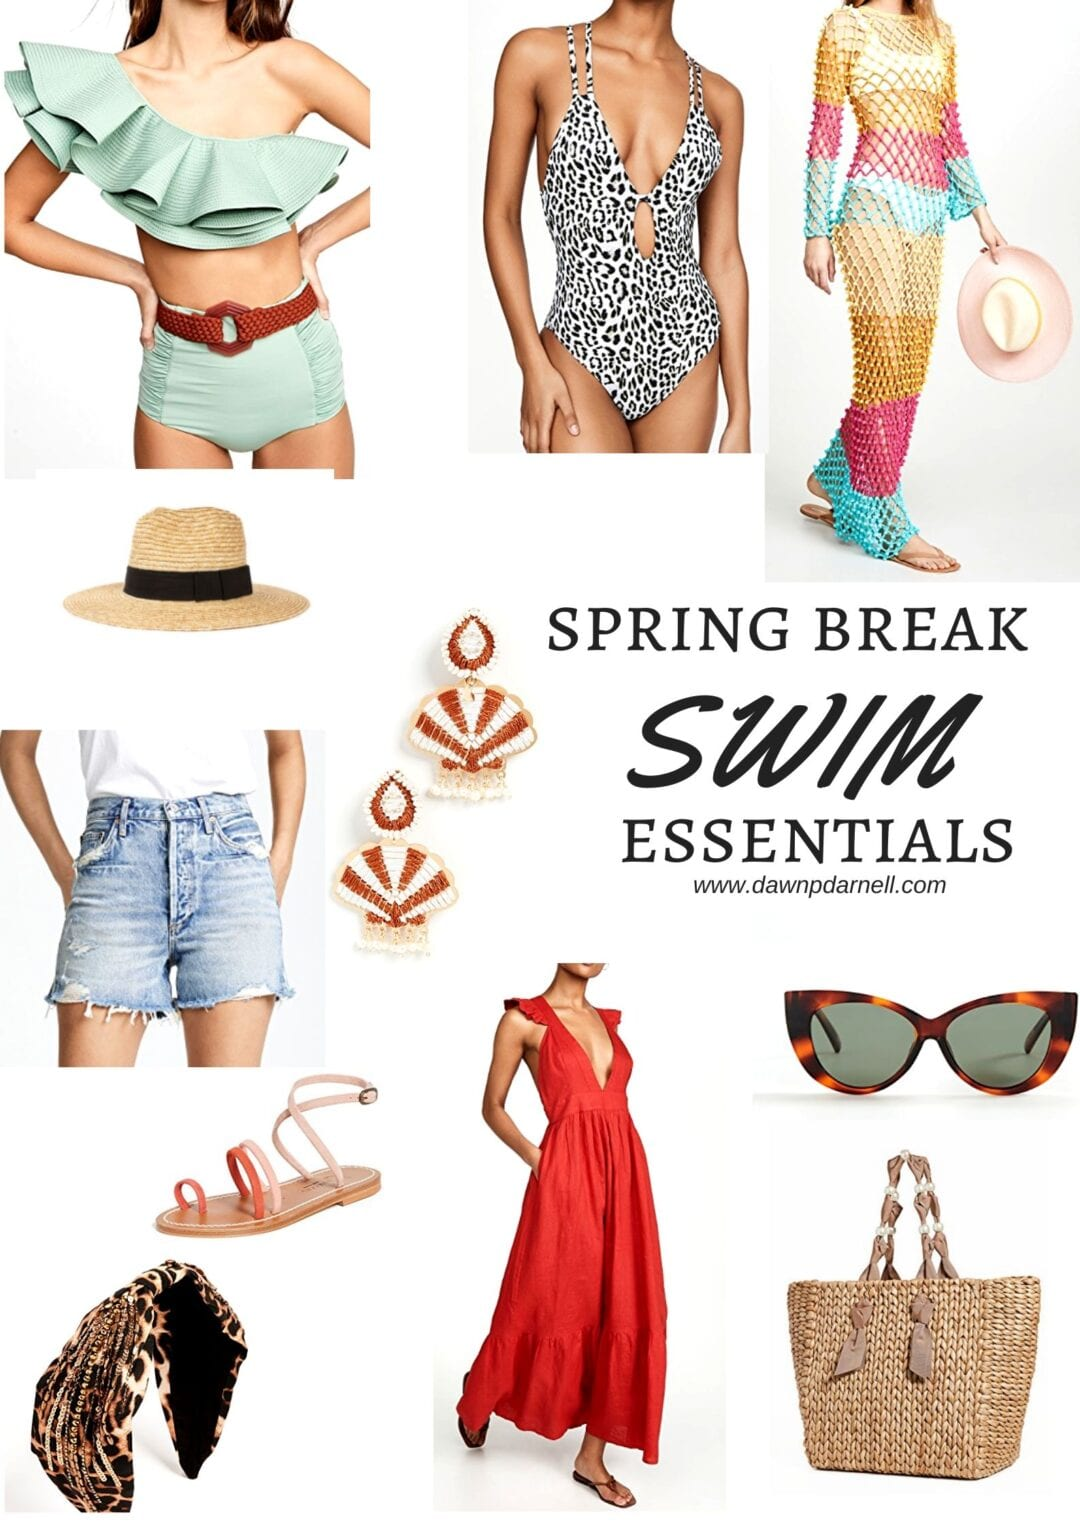 Shopbop, spring sale, spring break, swimsuit, swim essentials, beach bag, cat eye sunglasses, cut off shorts